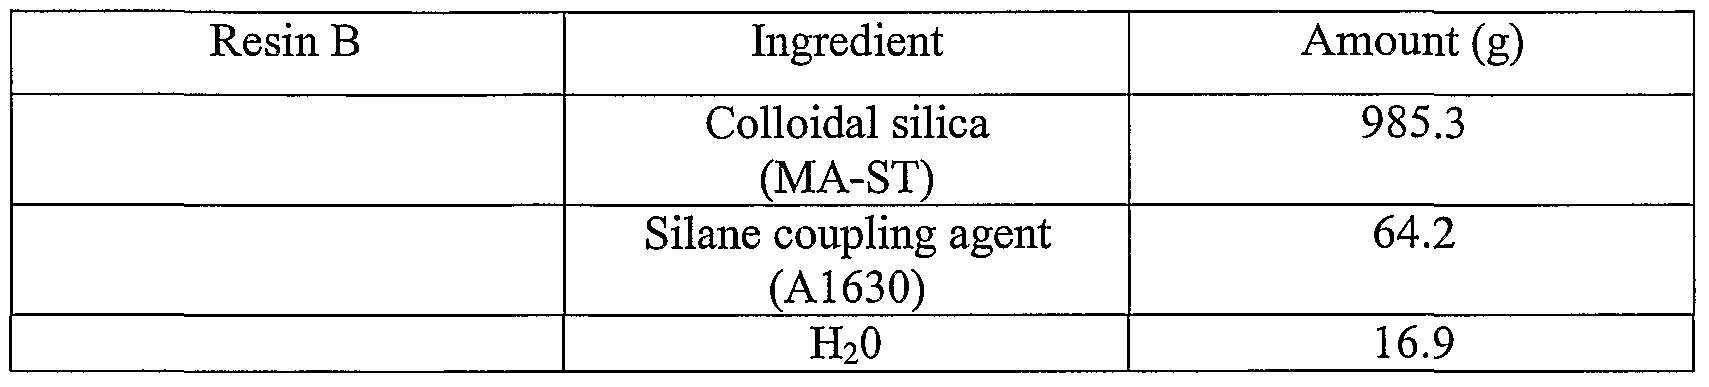 WO2007018617A1 - Optical coating composition - Google Patents